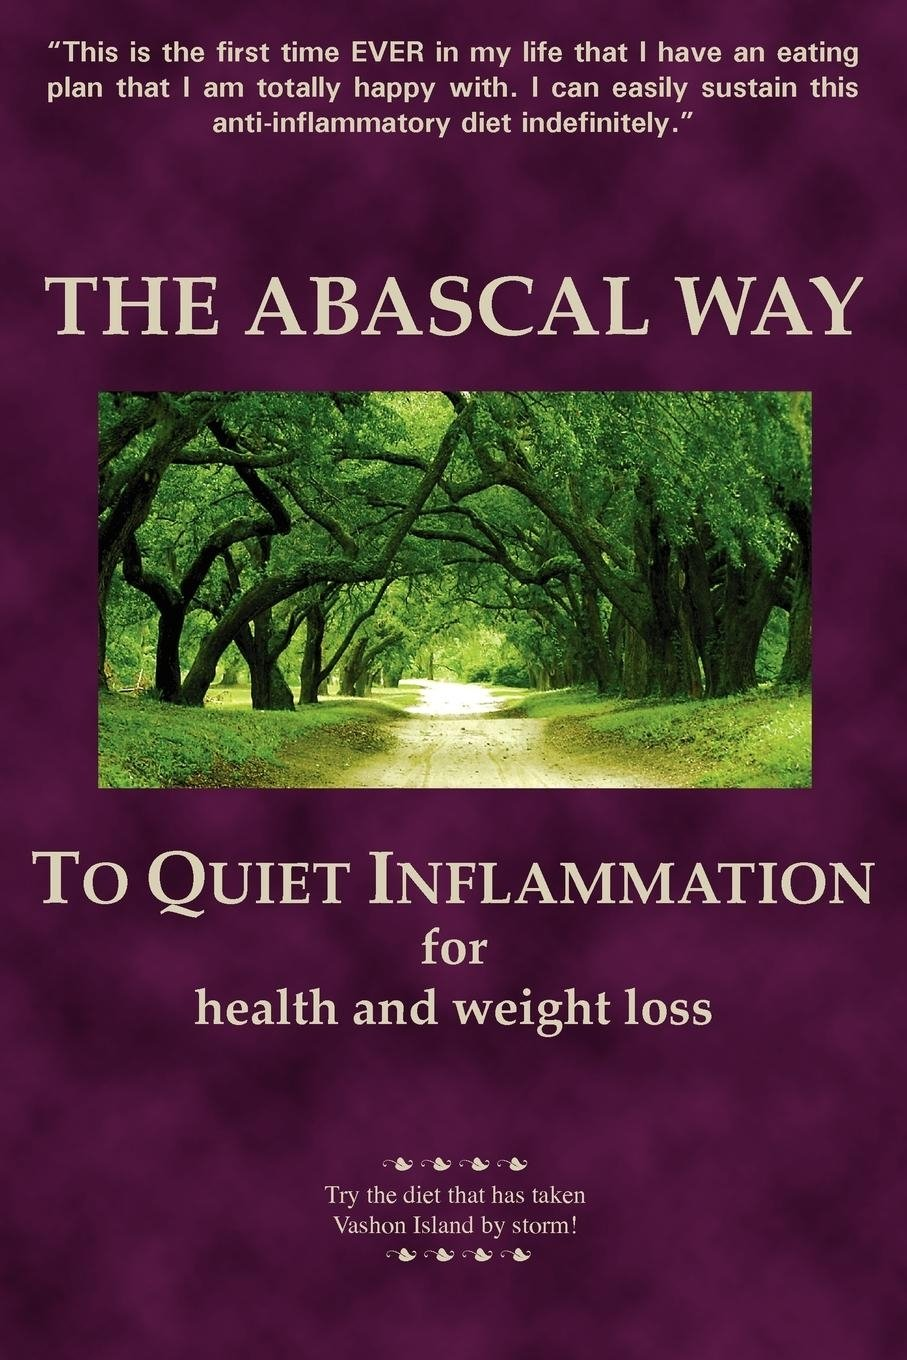 The Abascal Way: To Quiet Inflammation for Health and Weight Loss by Brand: Tigana Press